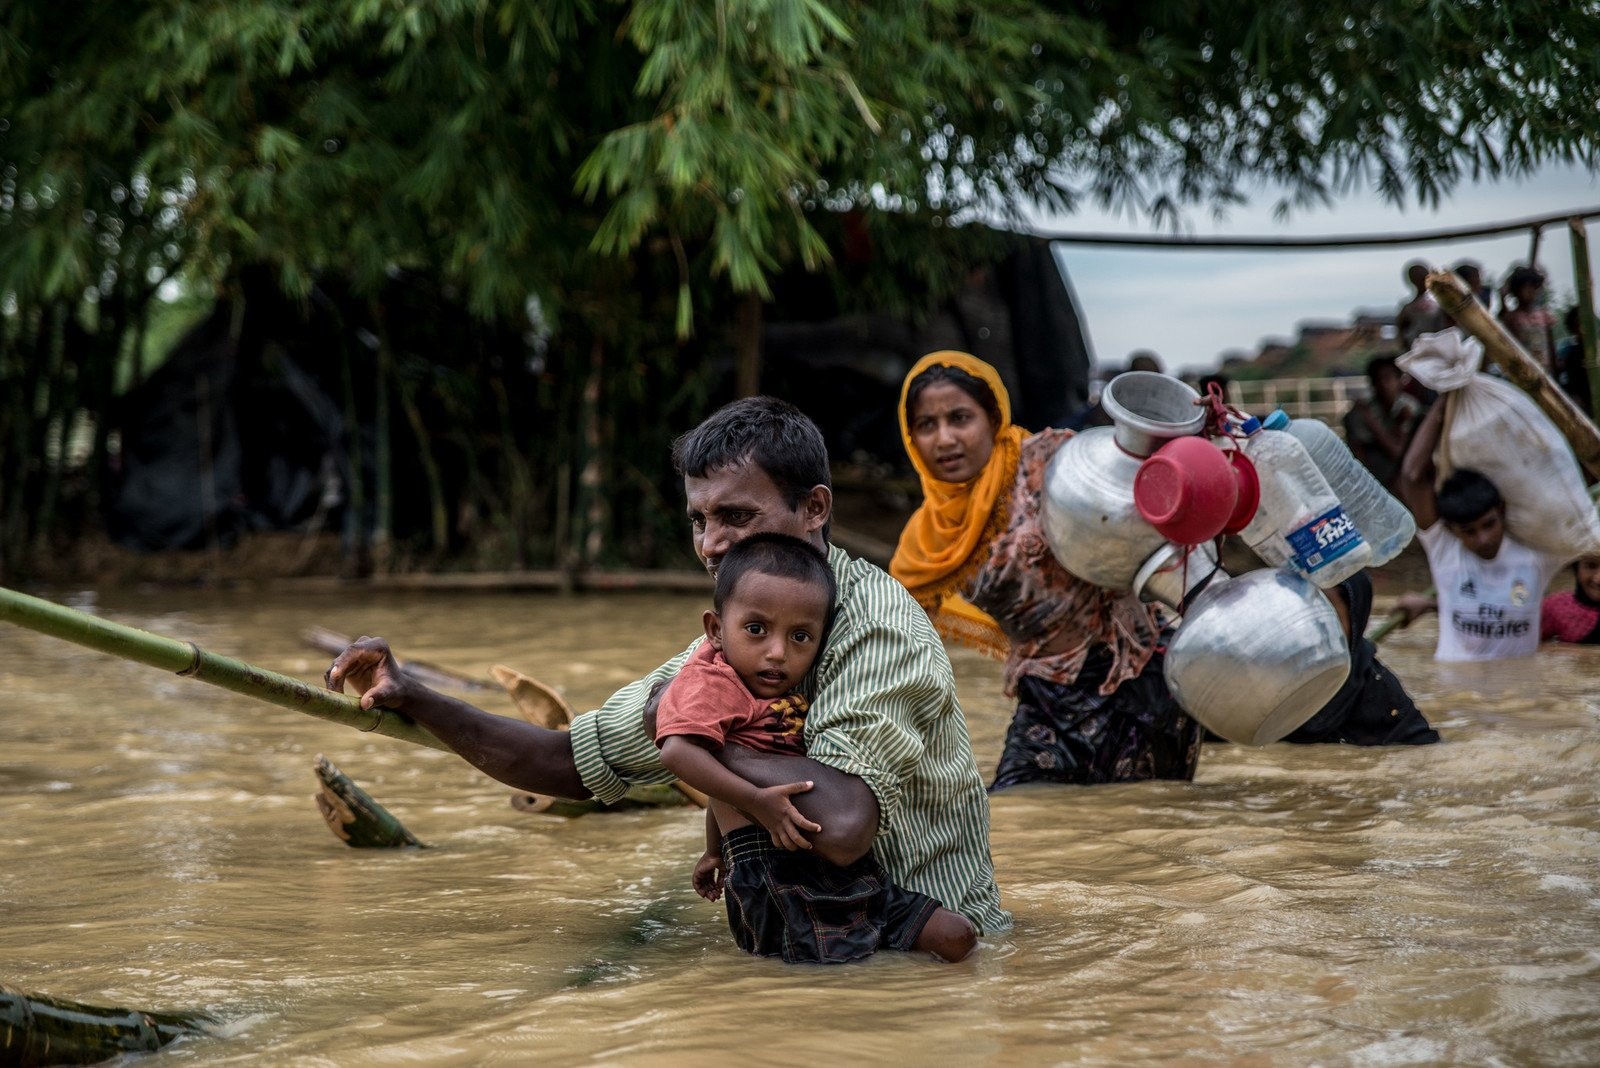 A father carries his son across a broken bamboo bridge on the edge of Balukhali camp, Bangladesh. Three days of heavy rains flooded many of the areas where people had set up temporary shelters, forcing them to move to higher ground. photo: Aurélie Marrier d'Unienville